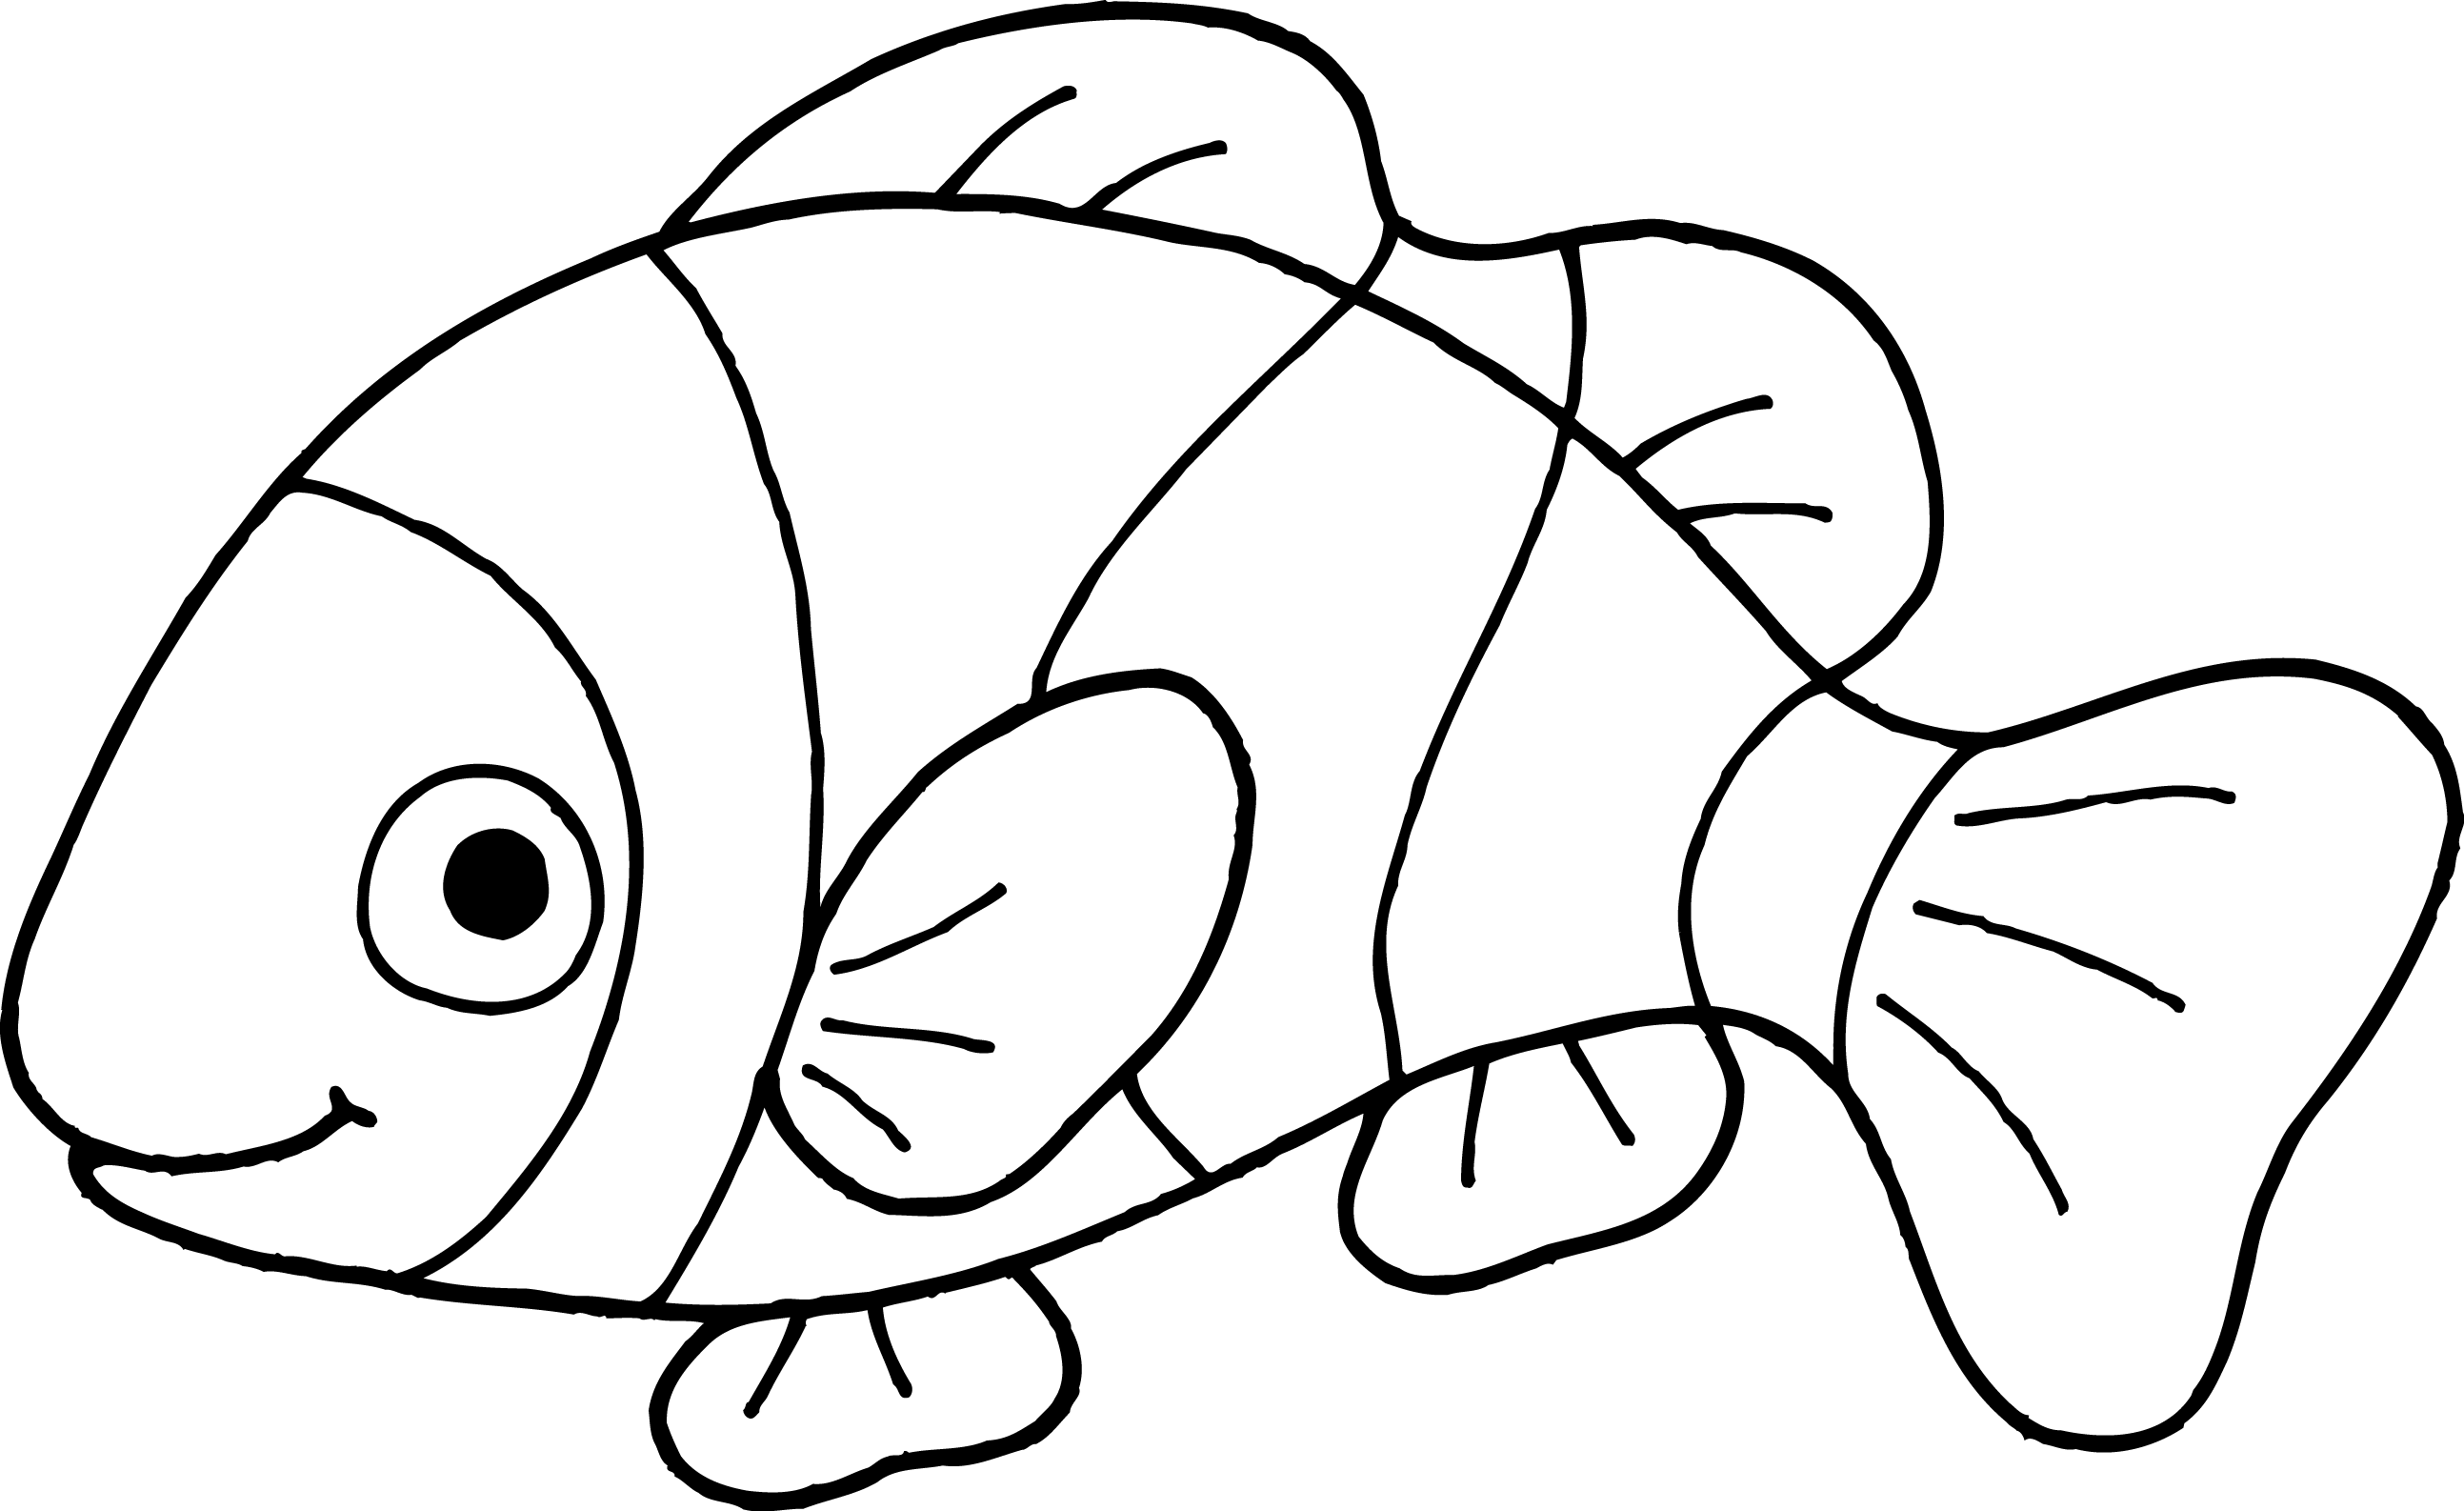 Free fish clipart black and white banner free Black-and-white, often abbreviated B/W or B&W, is a term referring ... banner free